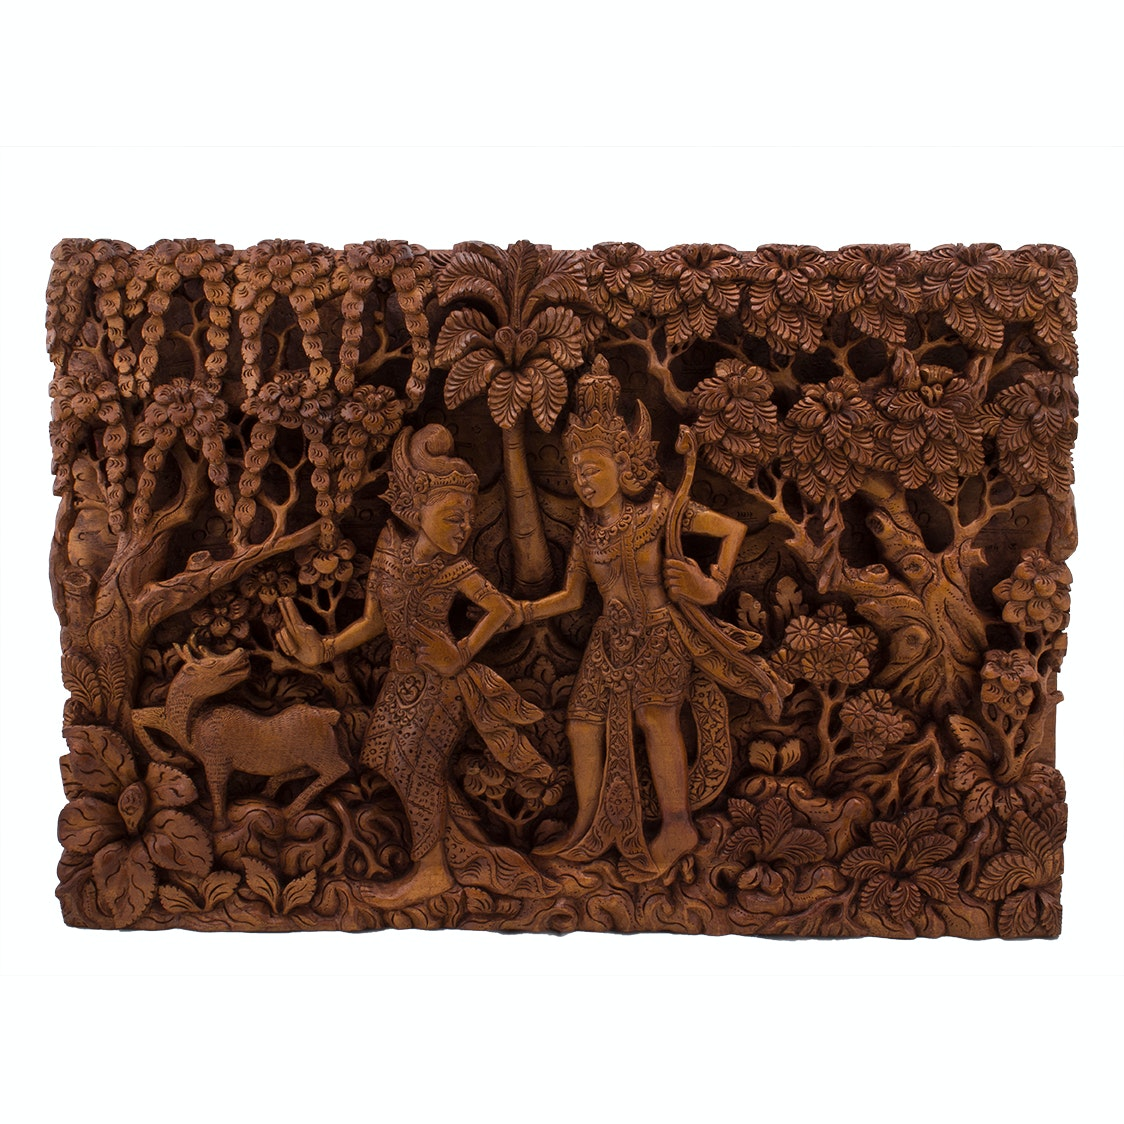 Southeast Asian Carved Wood Wall Sculpture